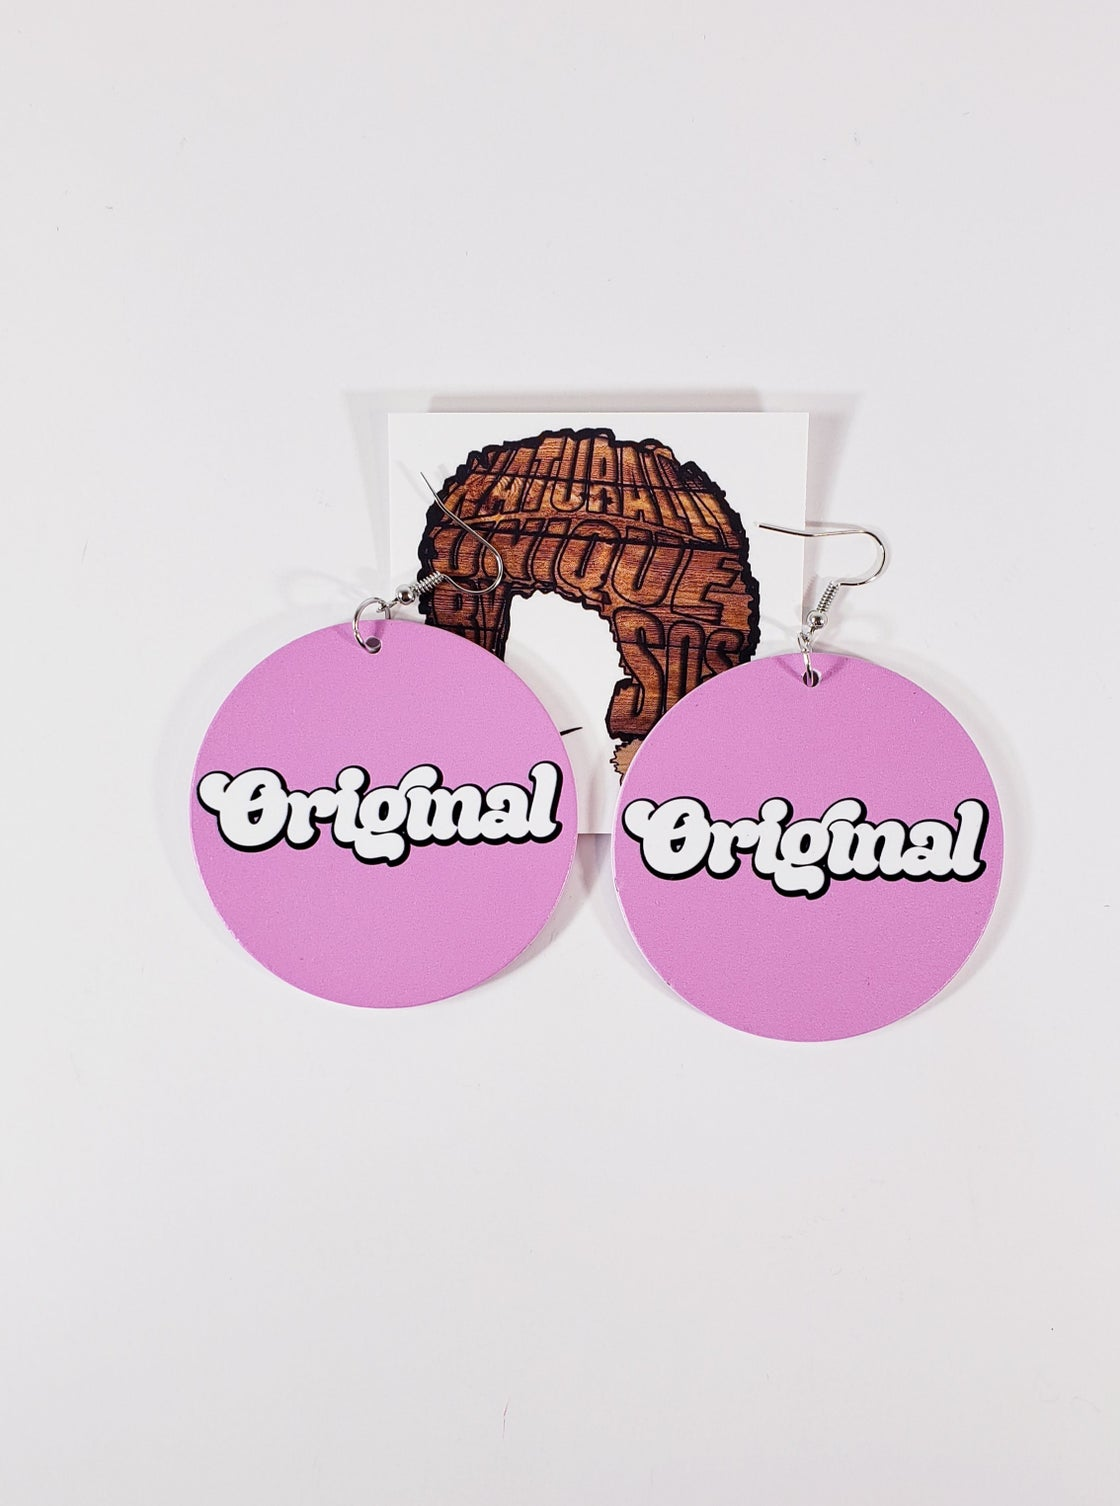 Image of Original Earrings